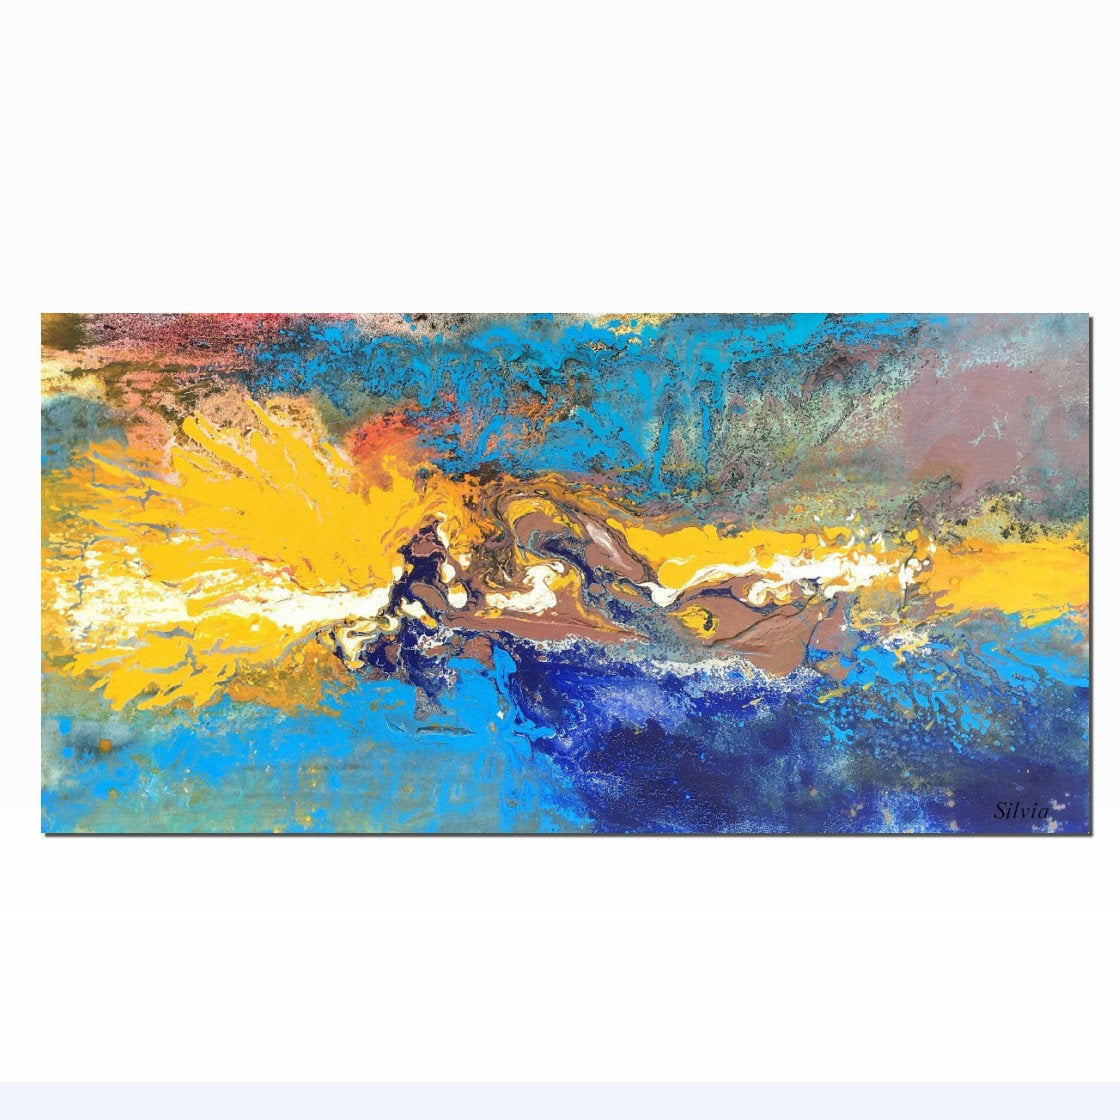 Abstract Art, Canvas Wall Art, Living Room Wall Art, Large Canvas Painting